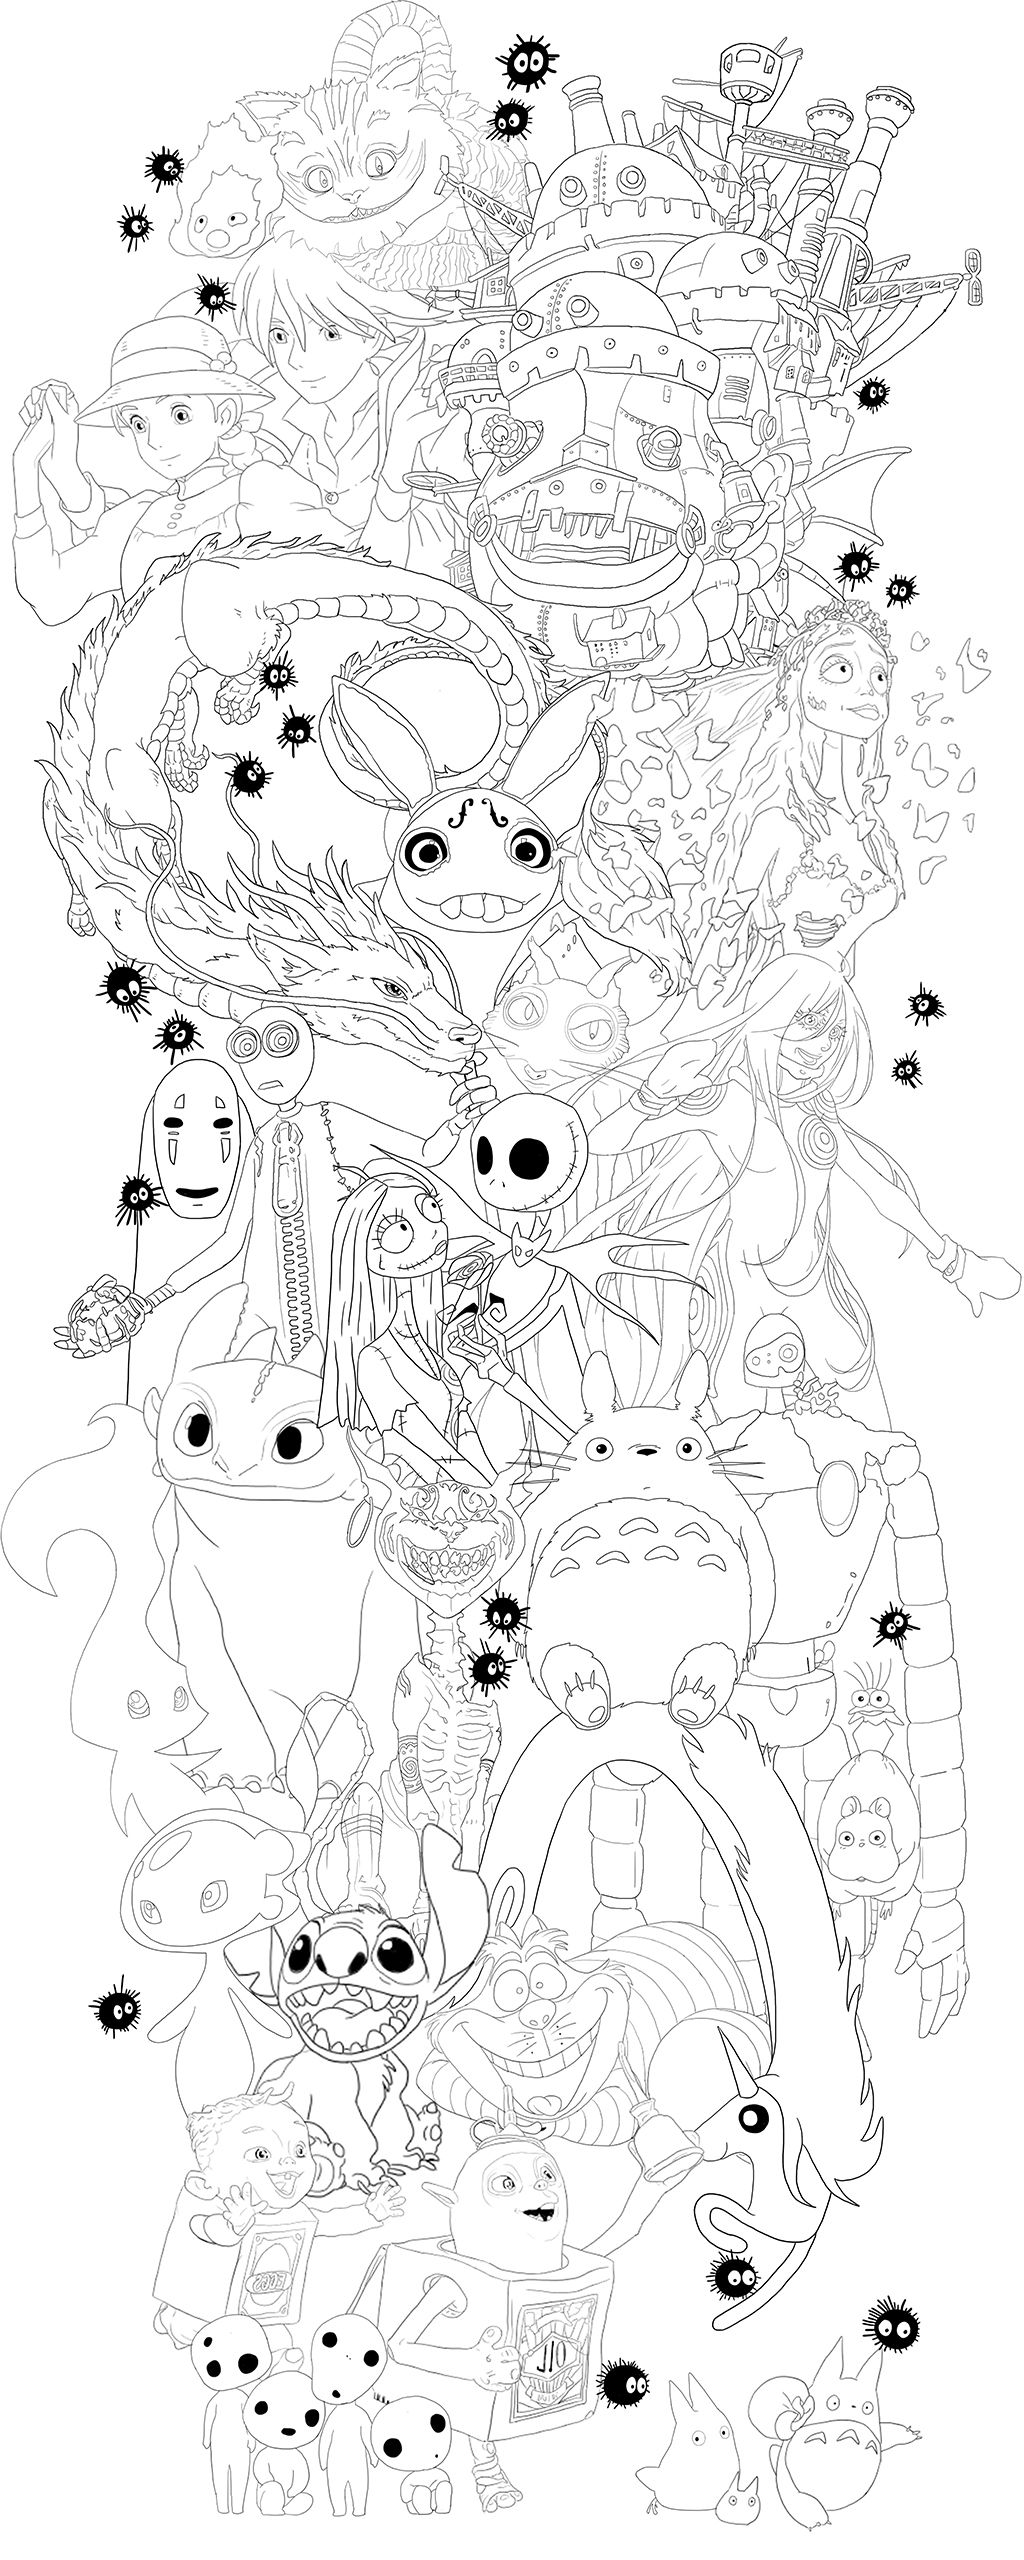 Line Work For A Tattoo Design Featuring Animated Characters From Cartoons Films Games And Anime Including Stu Disney Tattoos Ghibli Tattoo Tim Burton Tattoo